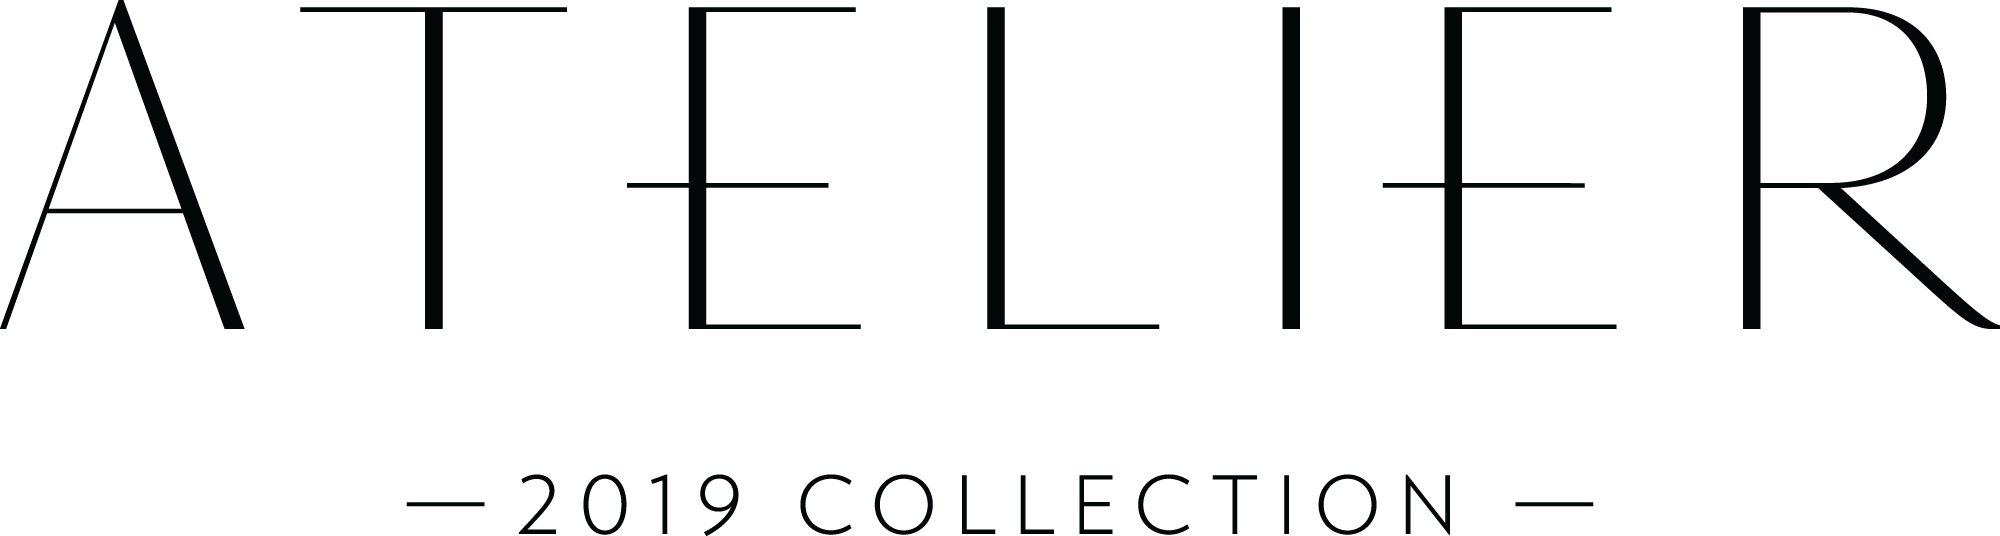 Atelier 2019 Collection logo